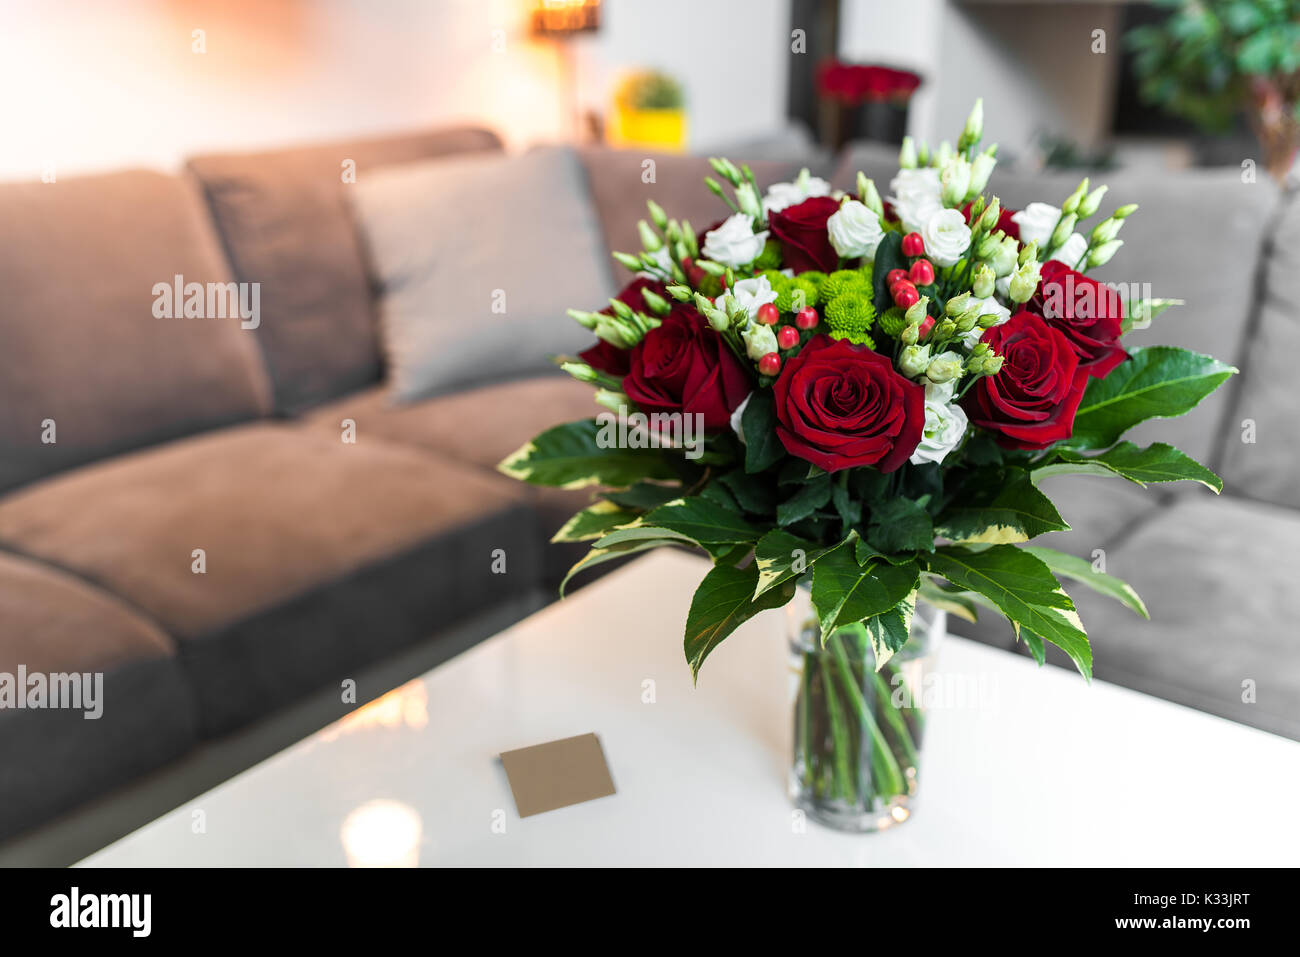 Bouquet of red roses standing on the white table in the saloon stock bouquet of red roses standing on the white table in the saloon izmirmasajfo Gallery